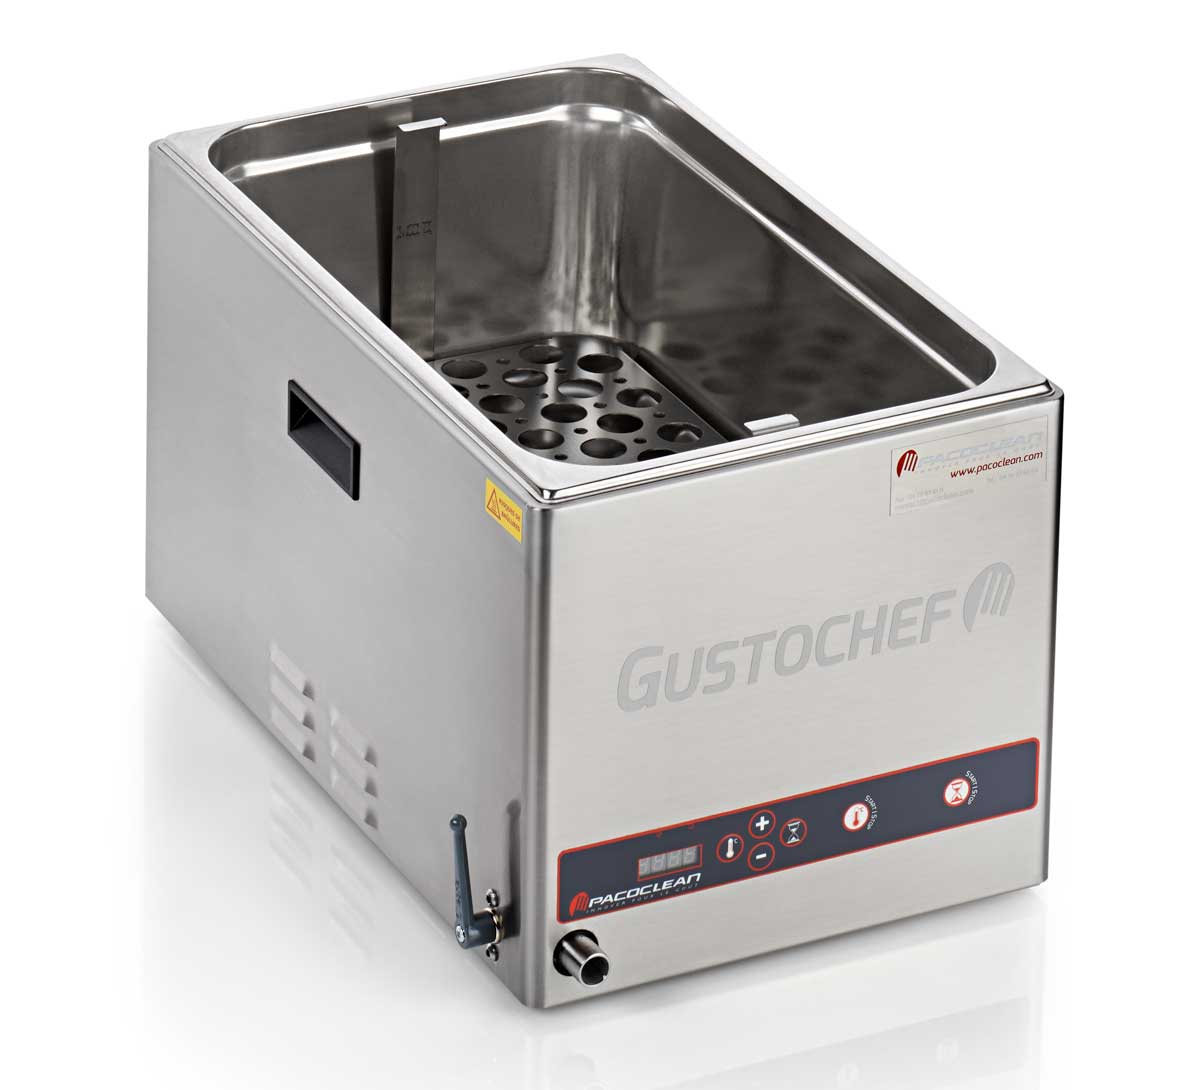 Gustochef-27L-open-pacoclean